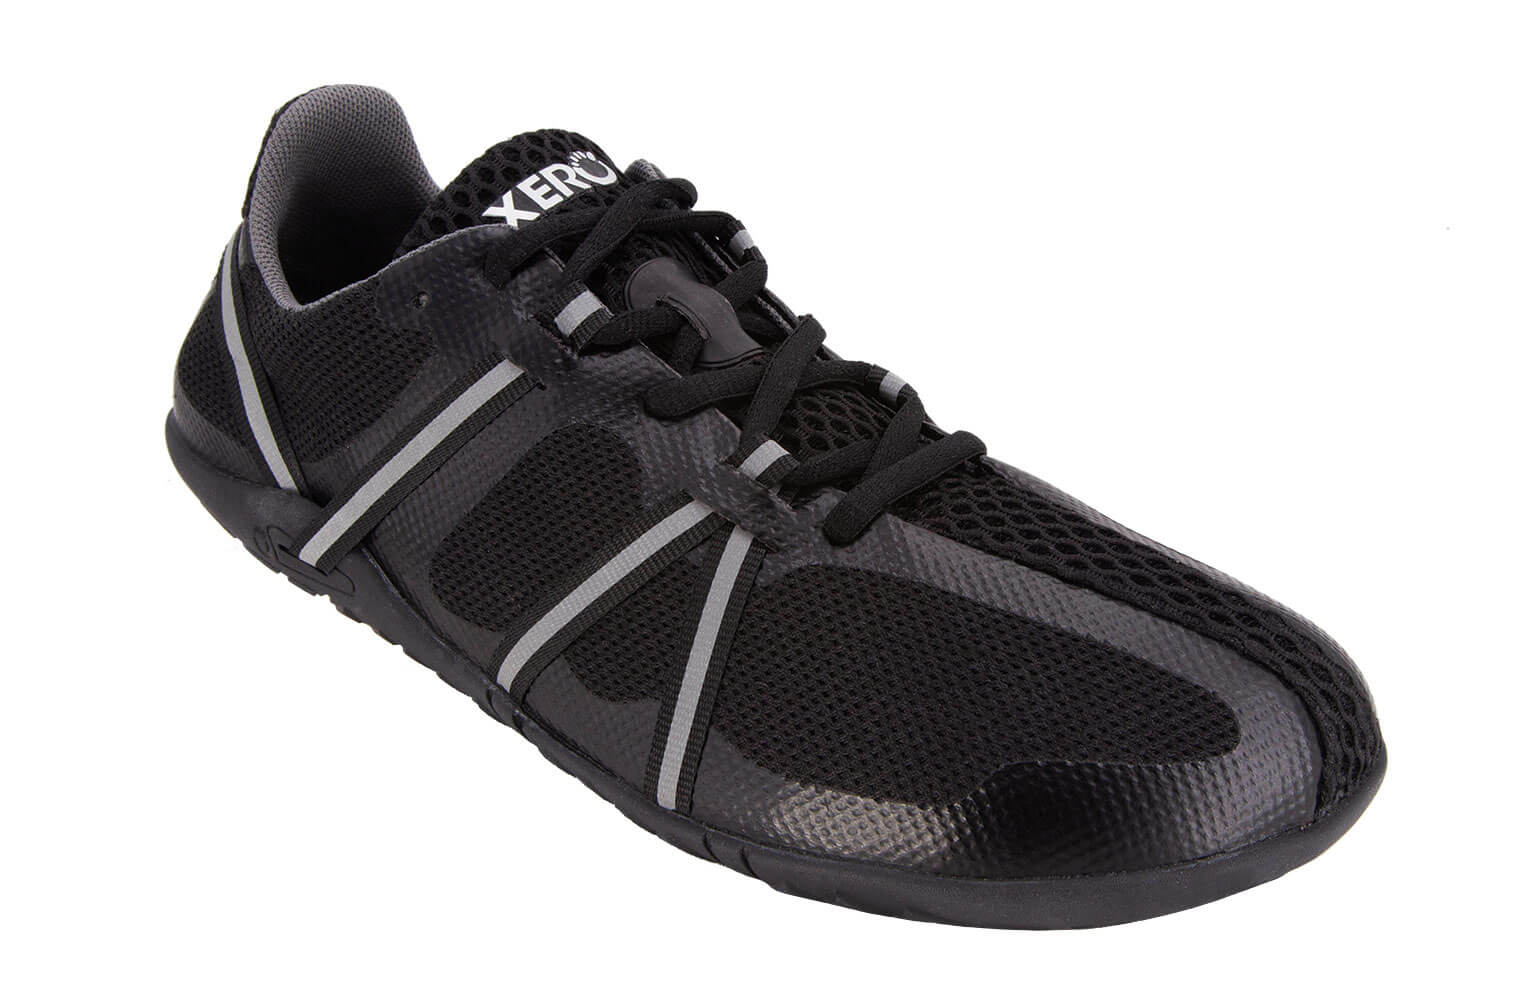 Speed Force by Xero Shoes featured image.